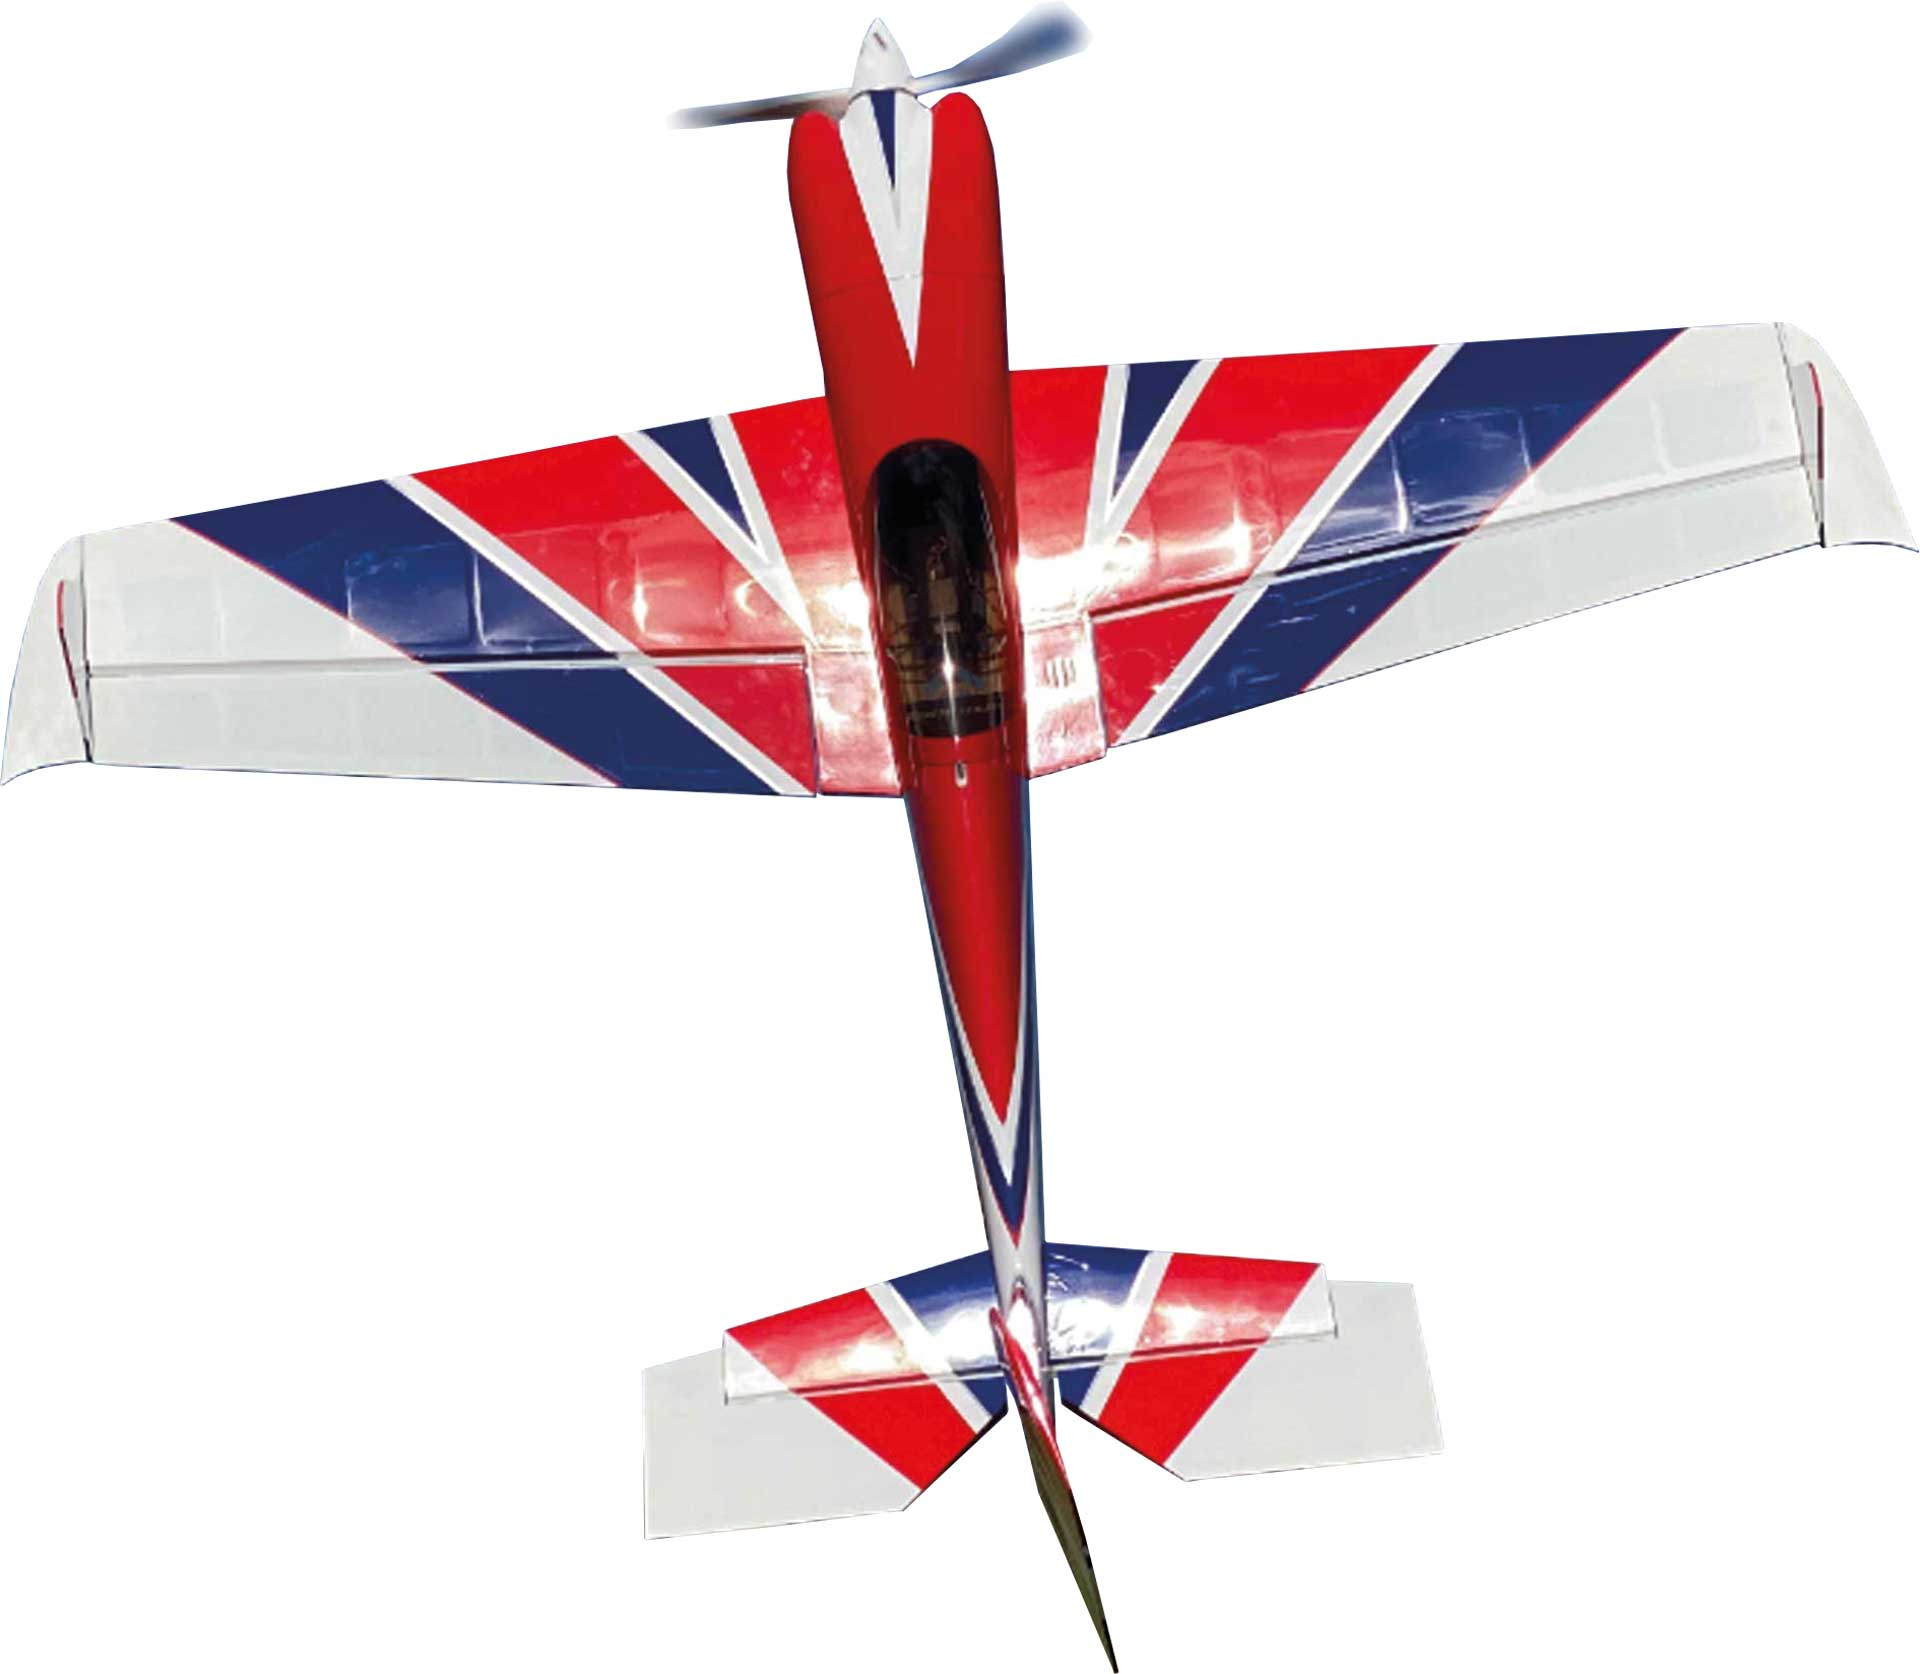 "EXTREMEFLIGHT-RC MXS 64"" PLUS Red/Blue/White ARF"